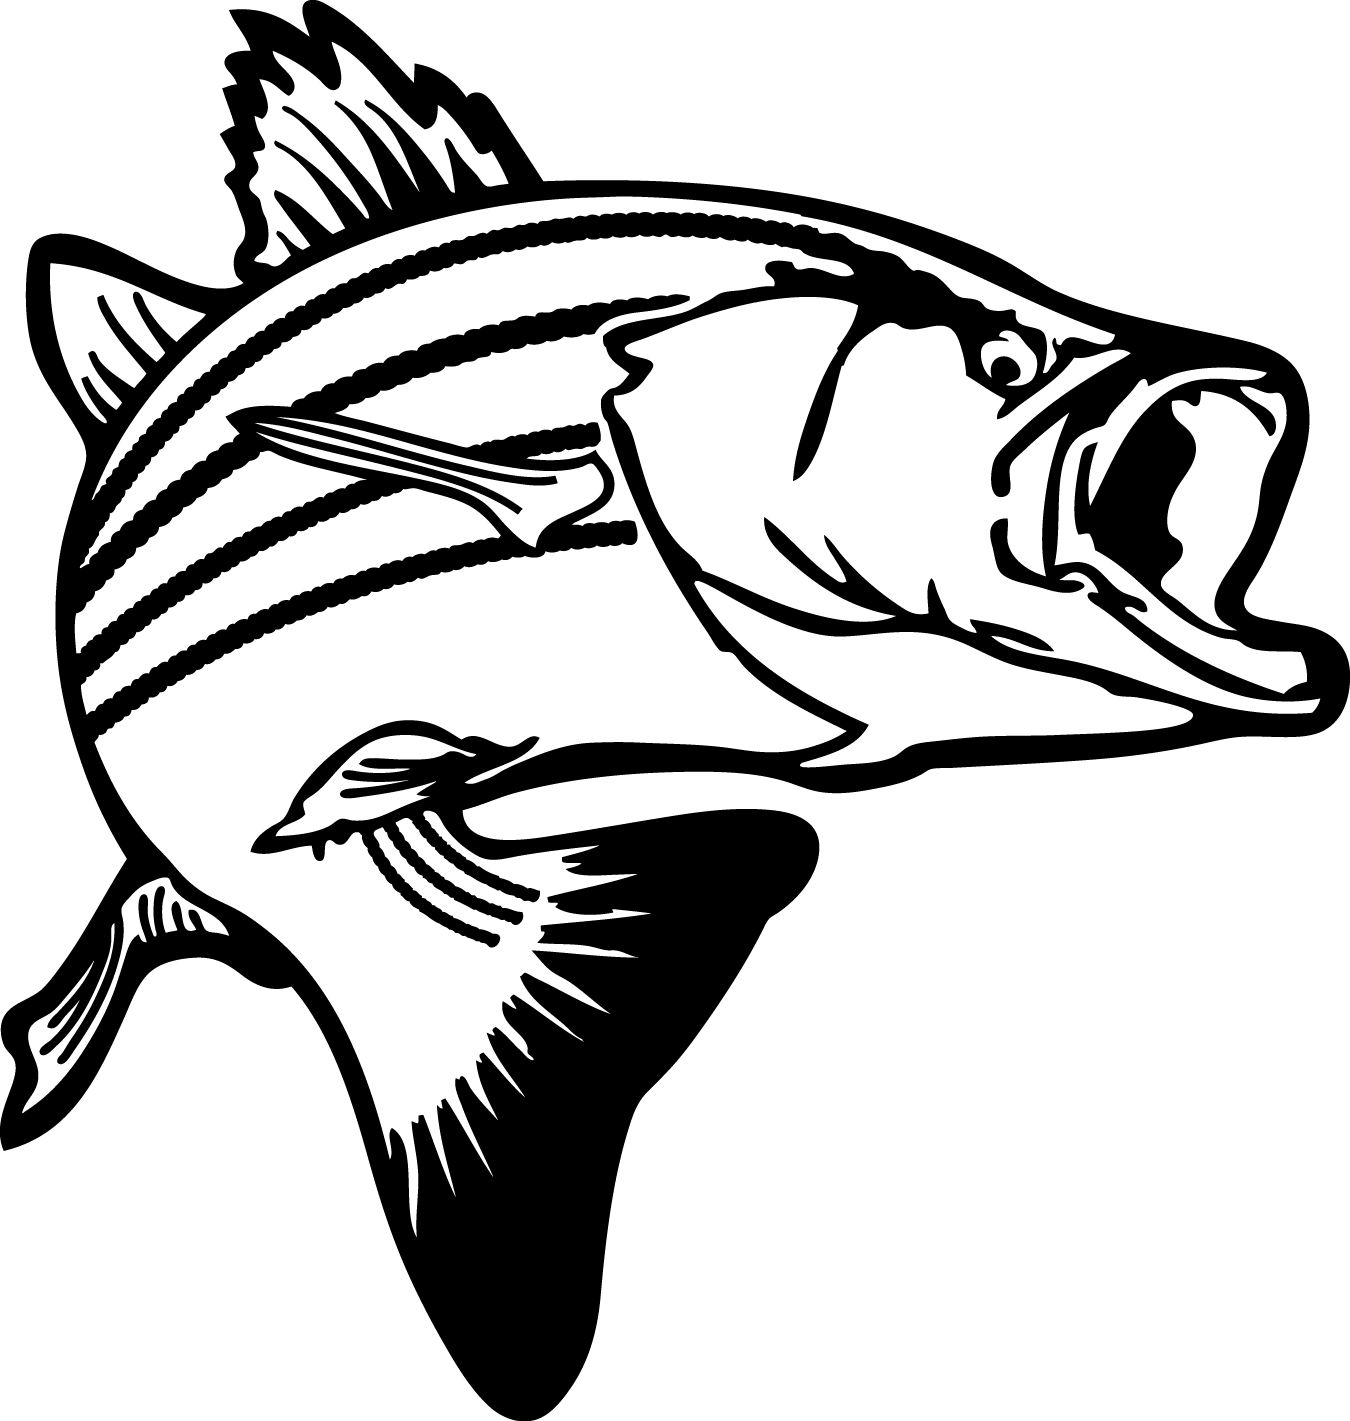 1350x1421 Free Fish Clipart Black And White Image